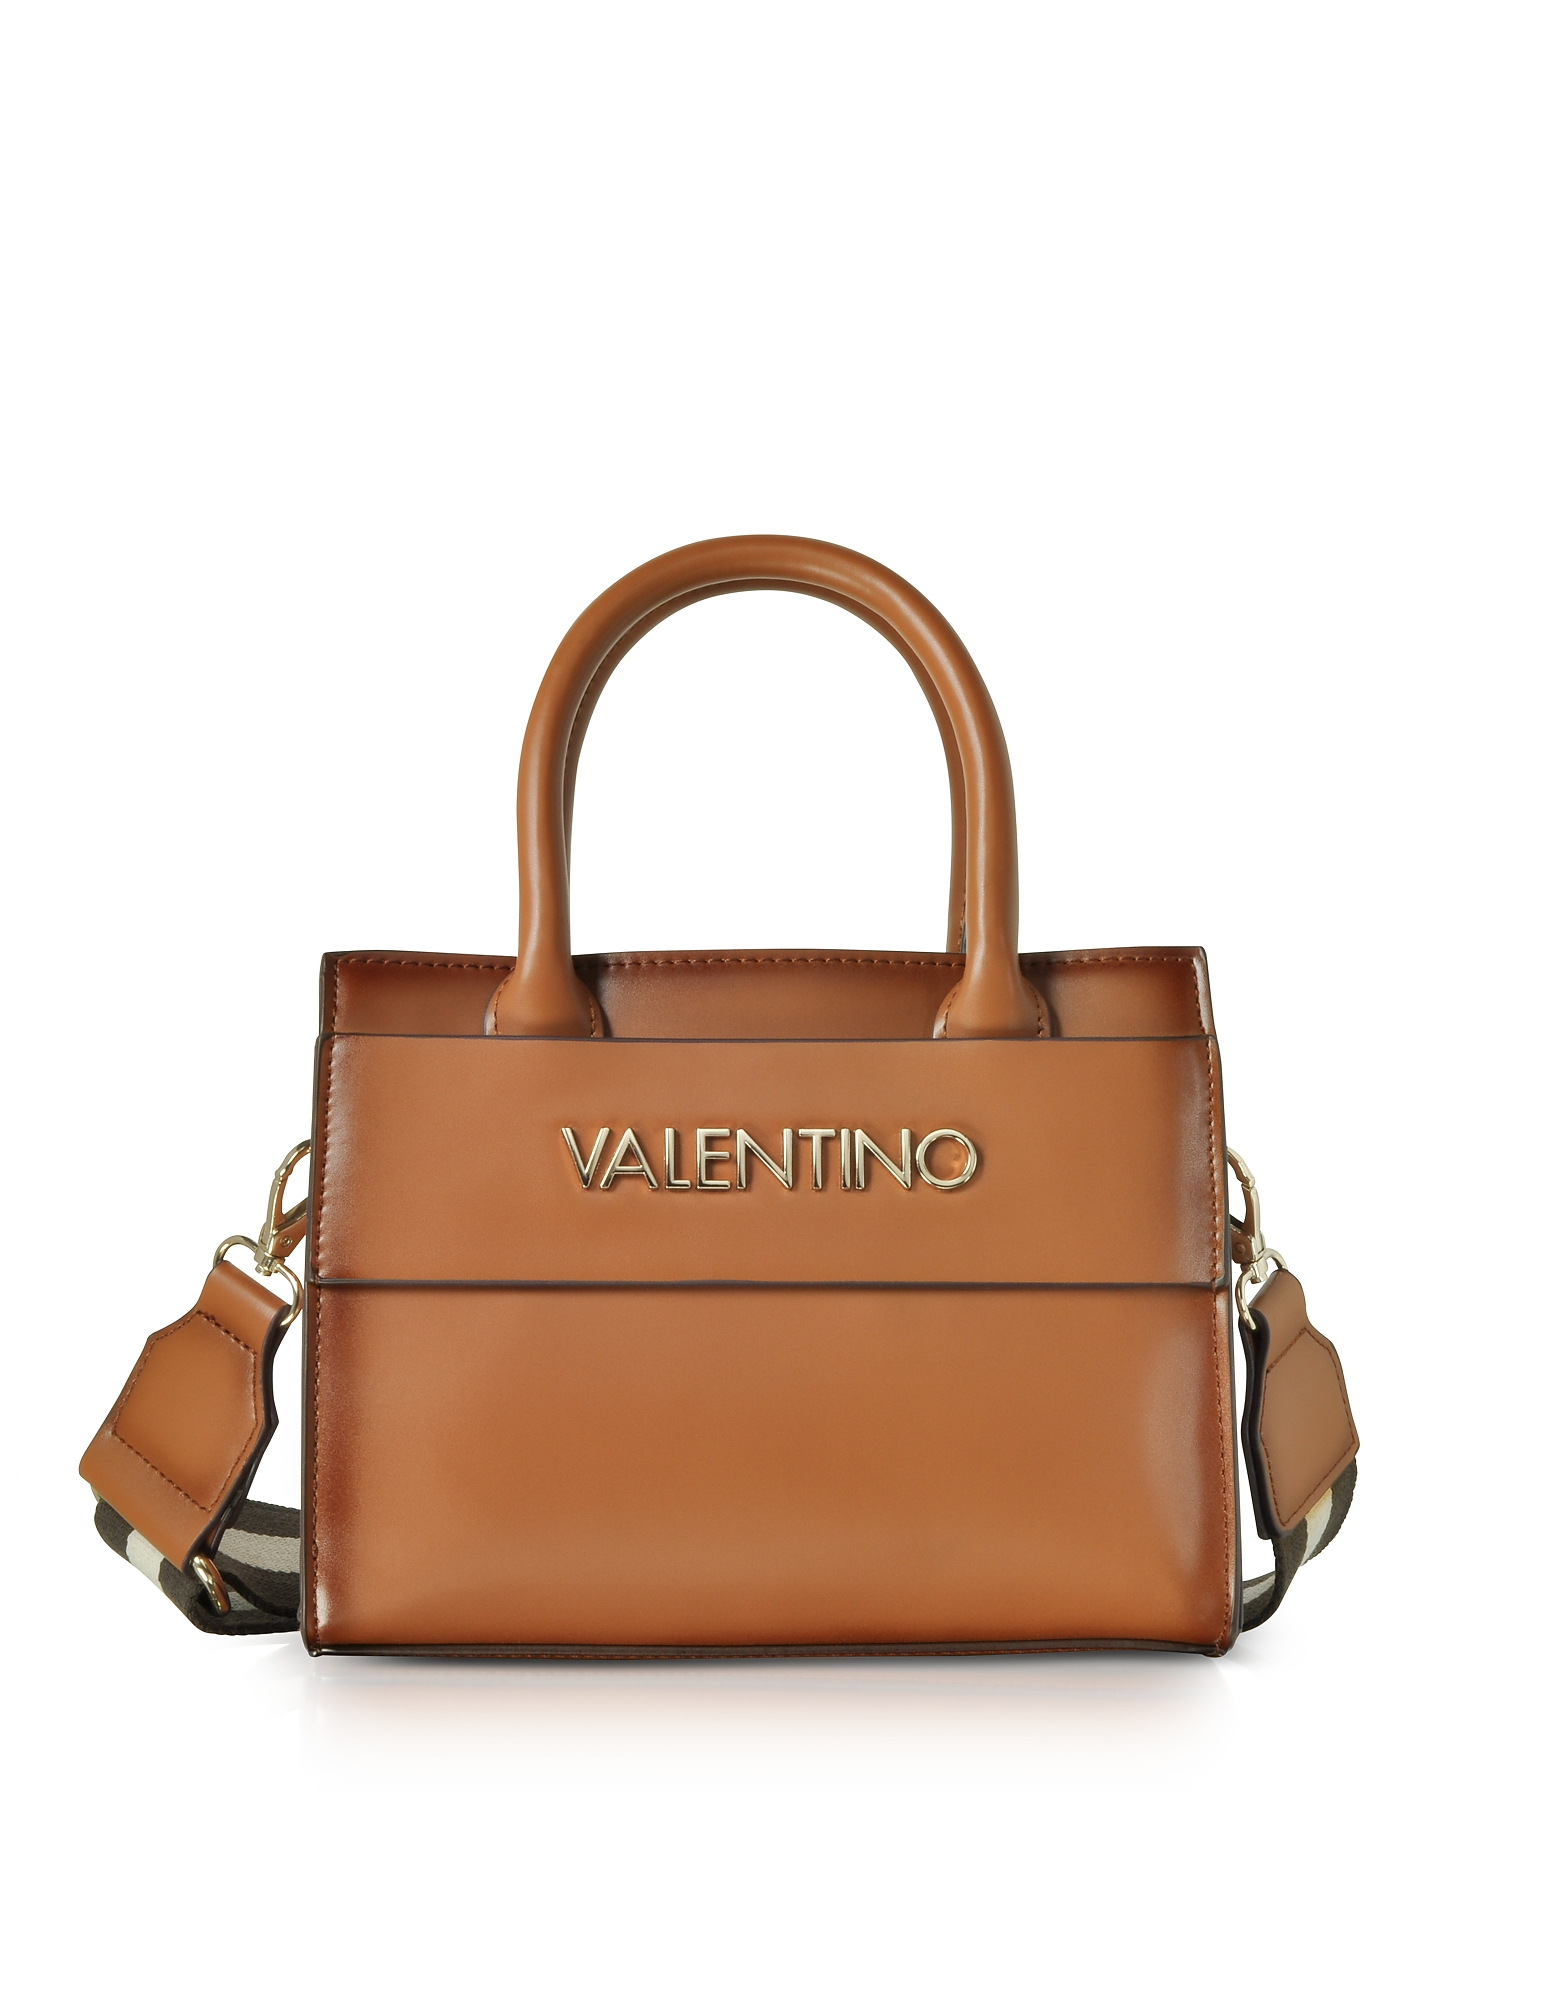 VALENTINO BY MARIO VALENTINO Small Blast Eco Leather Tote Bag